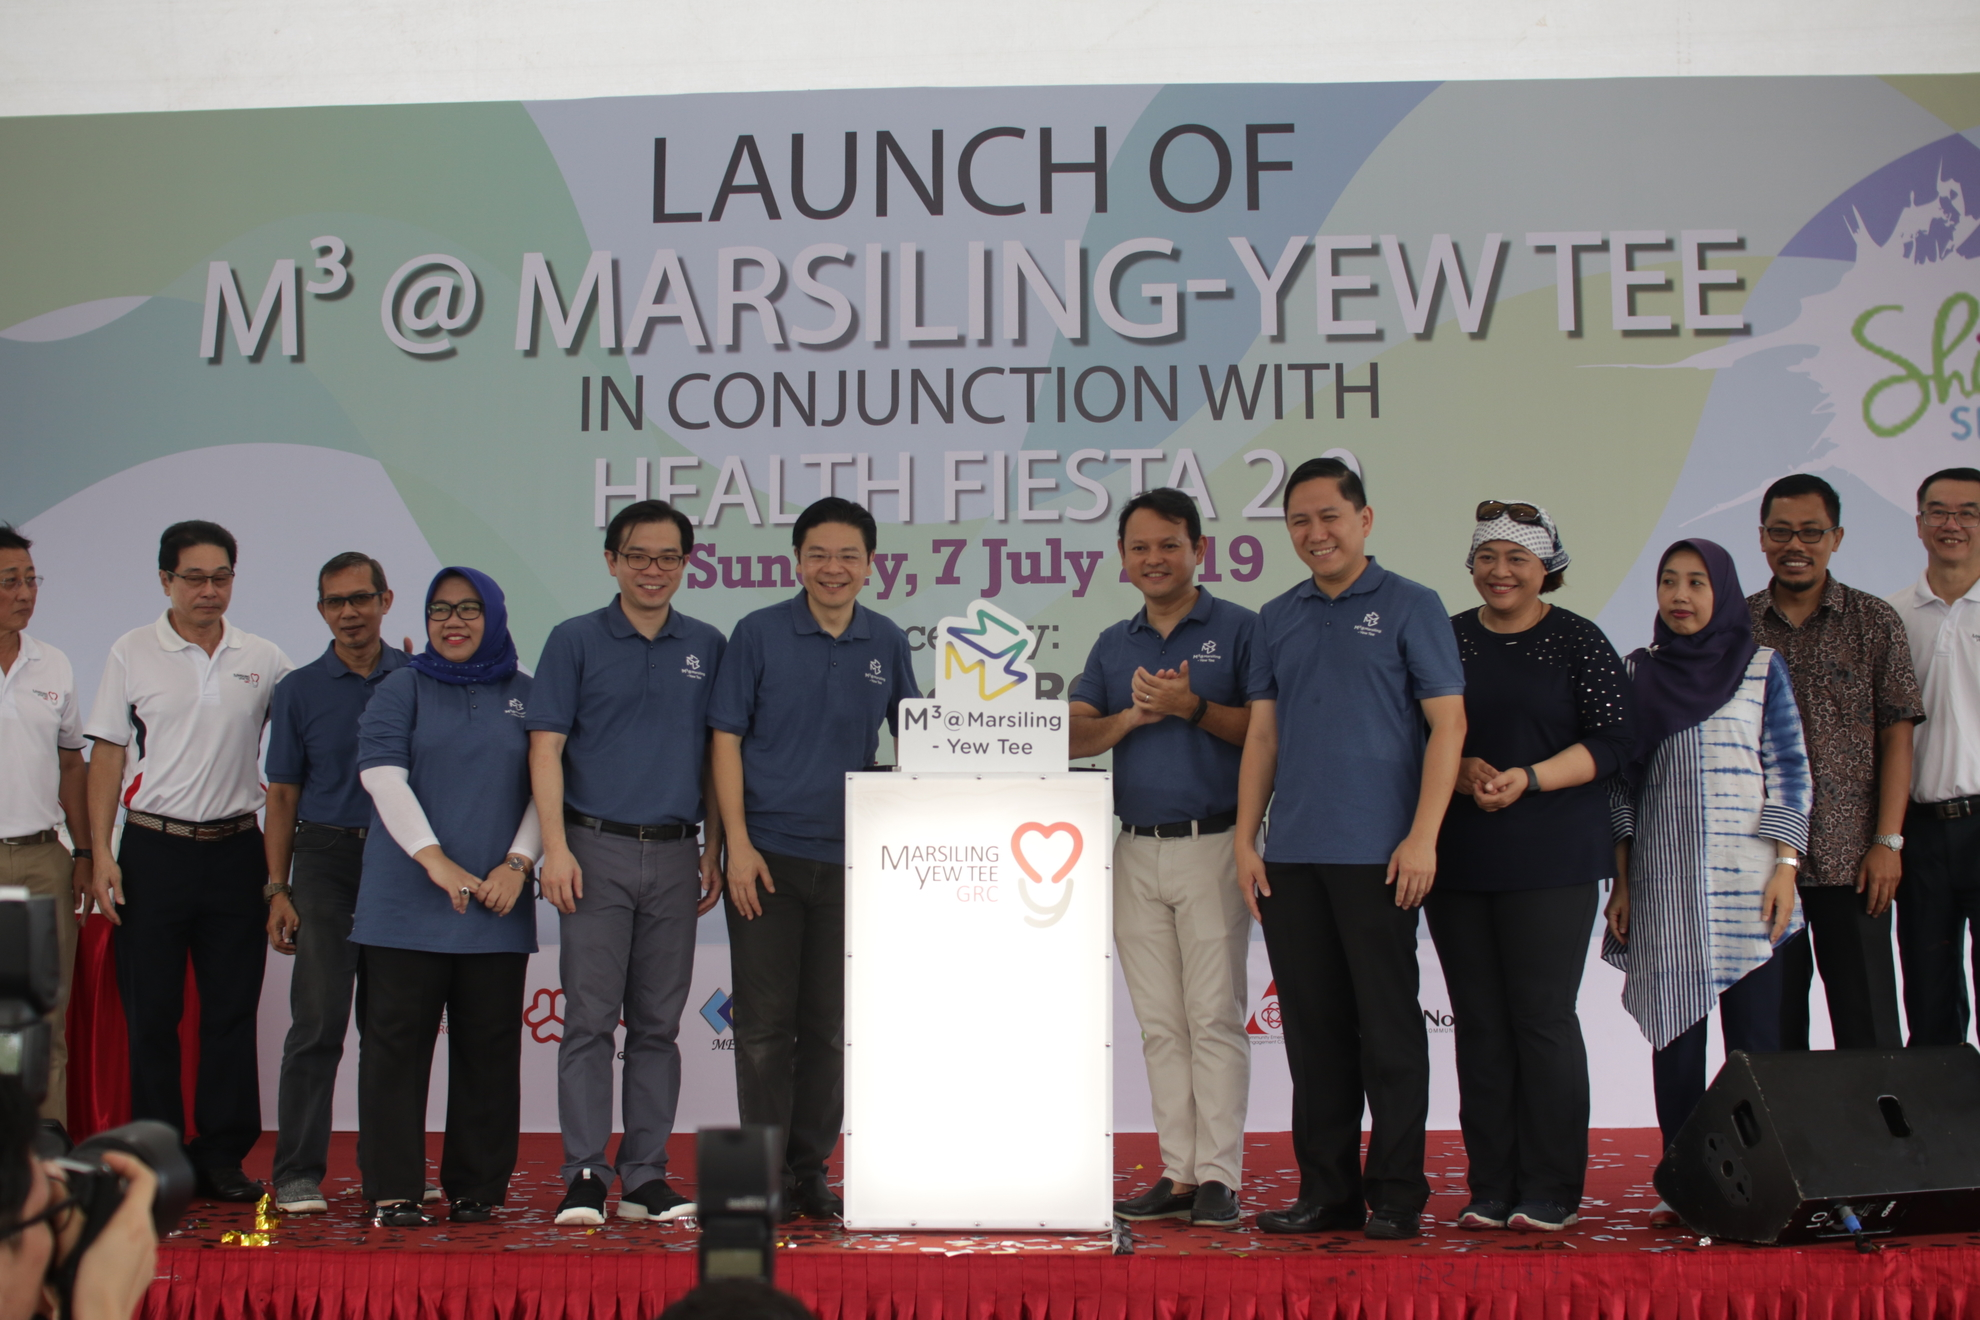 M³ Marsiling-Yew Tee Launched